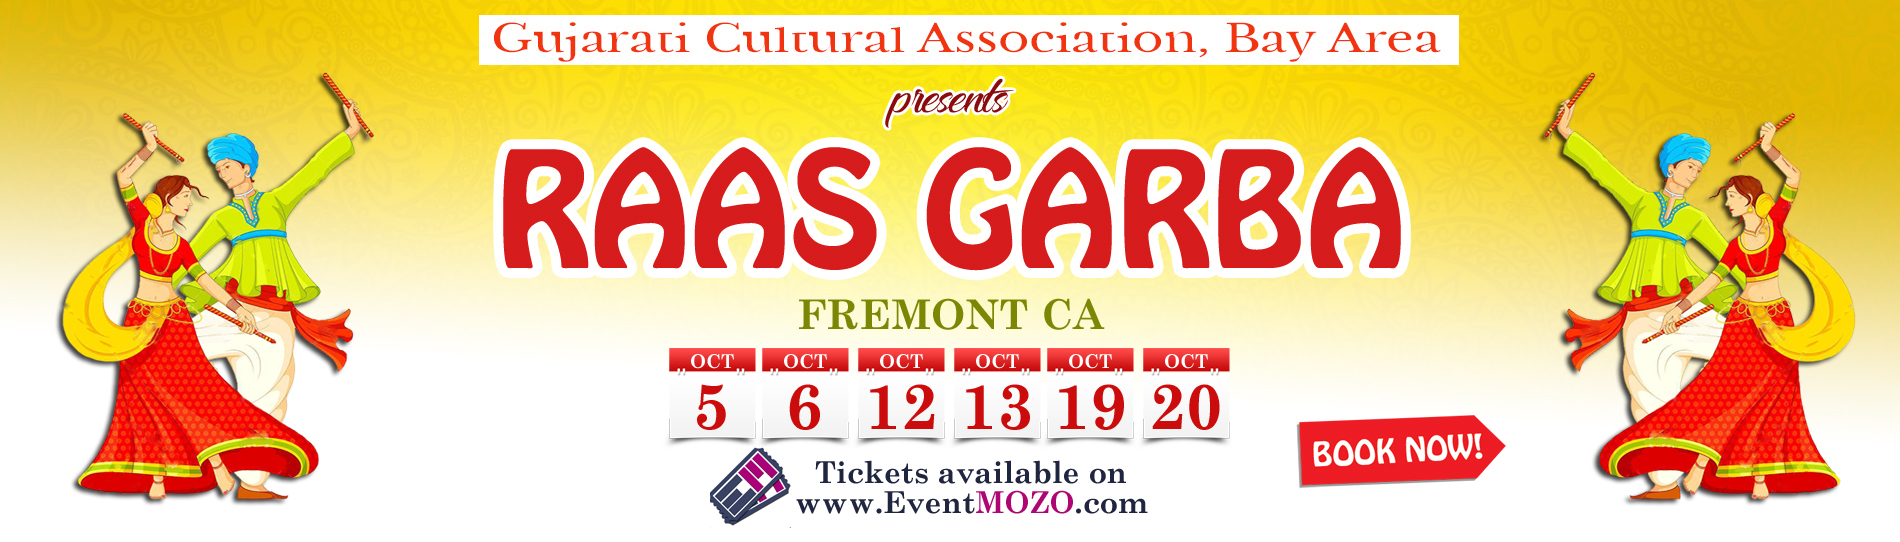 EventMozo Garba Events in Bay Area